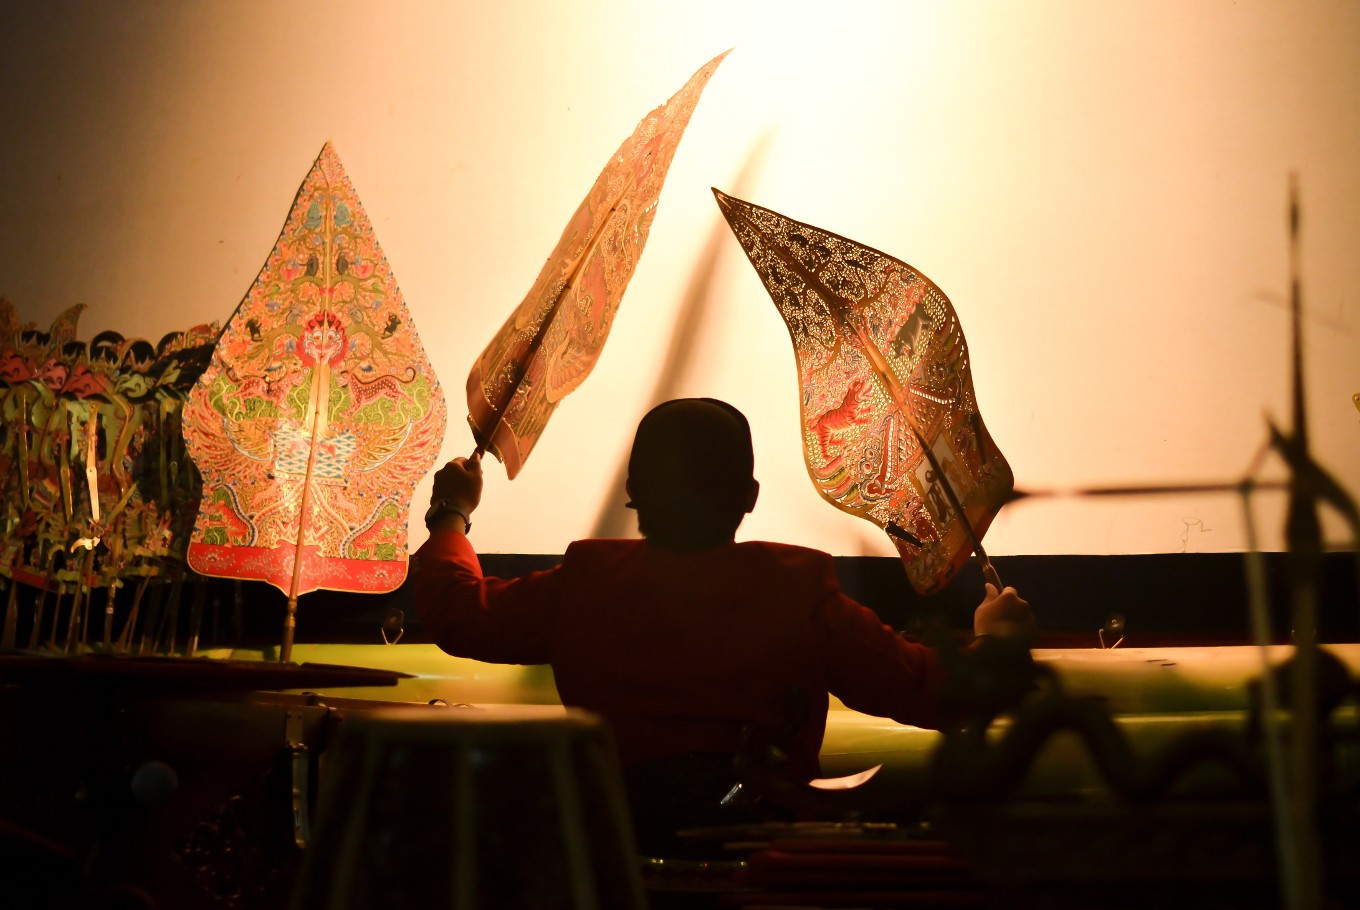 Wayang show, orchestra concert for a virus-safe weekend